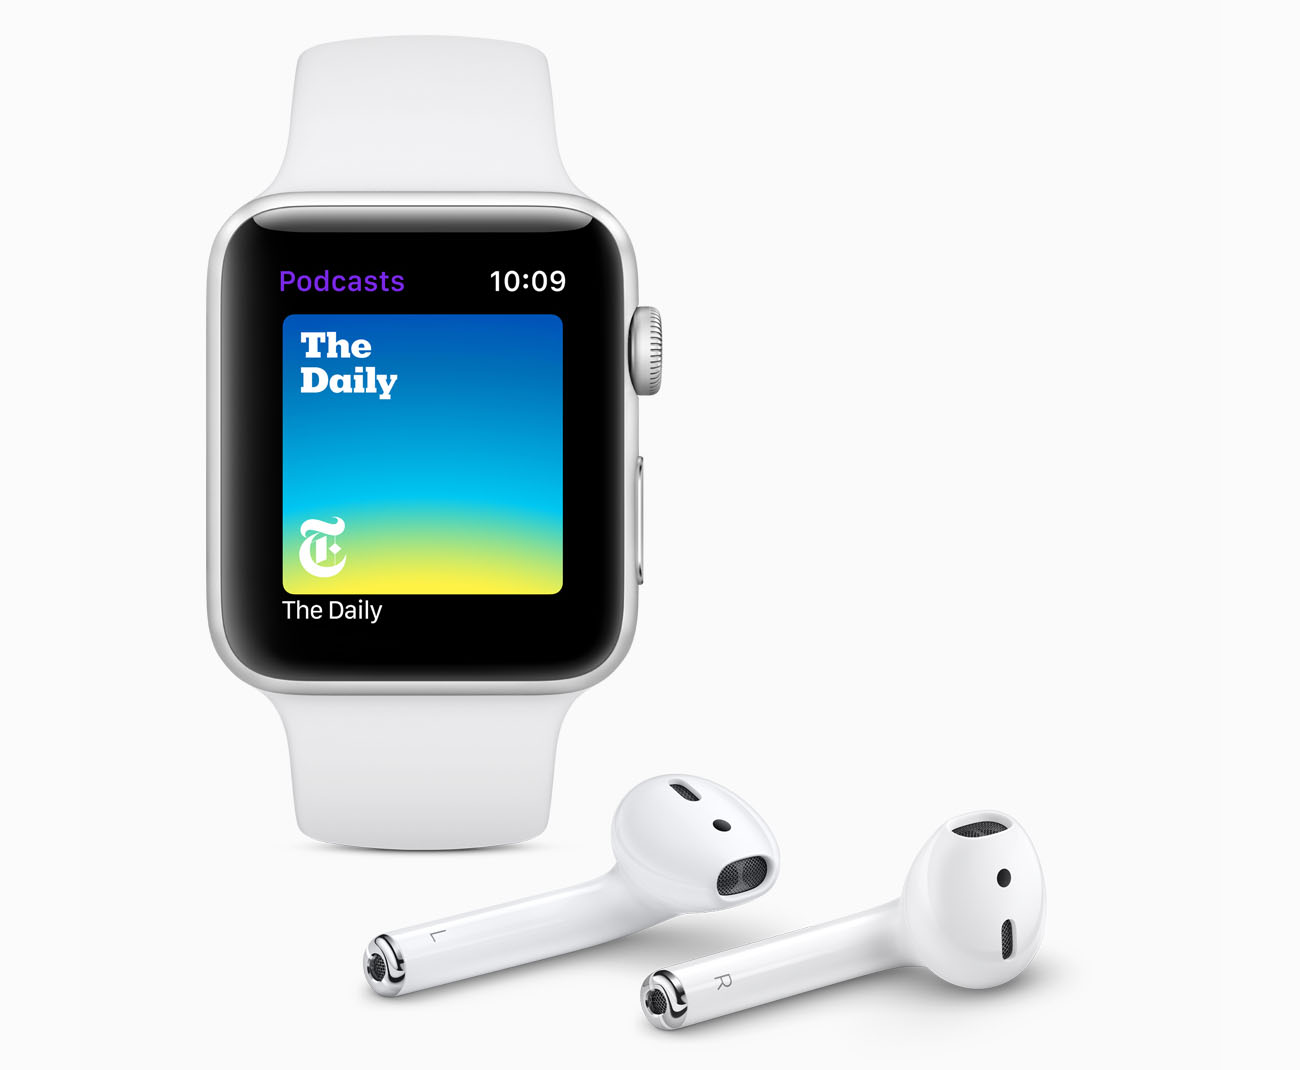 Podcast-app voor Apple Watch